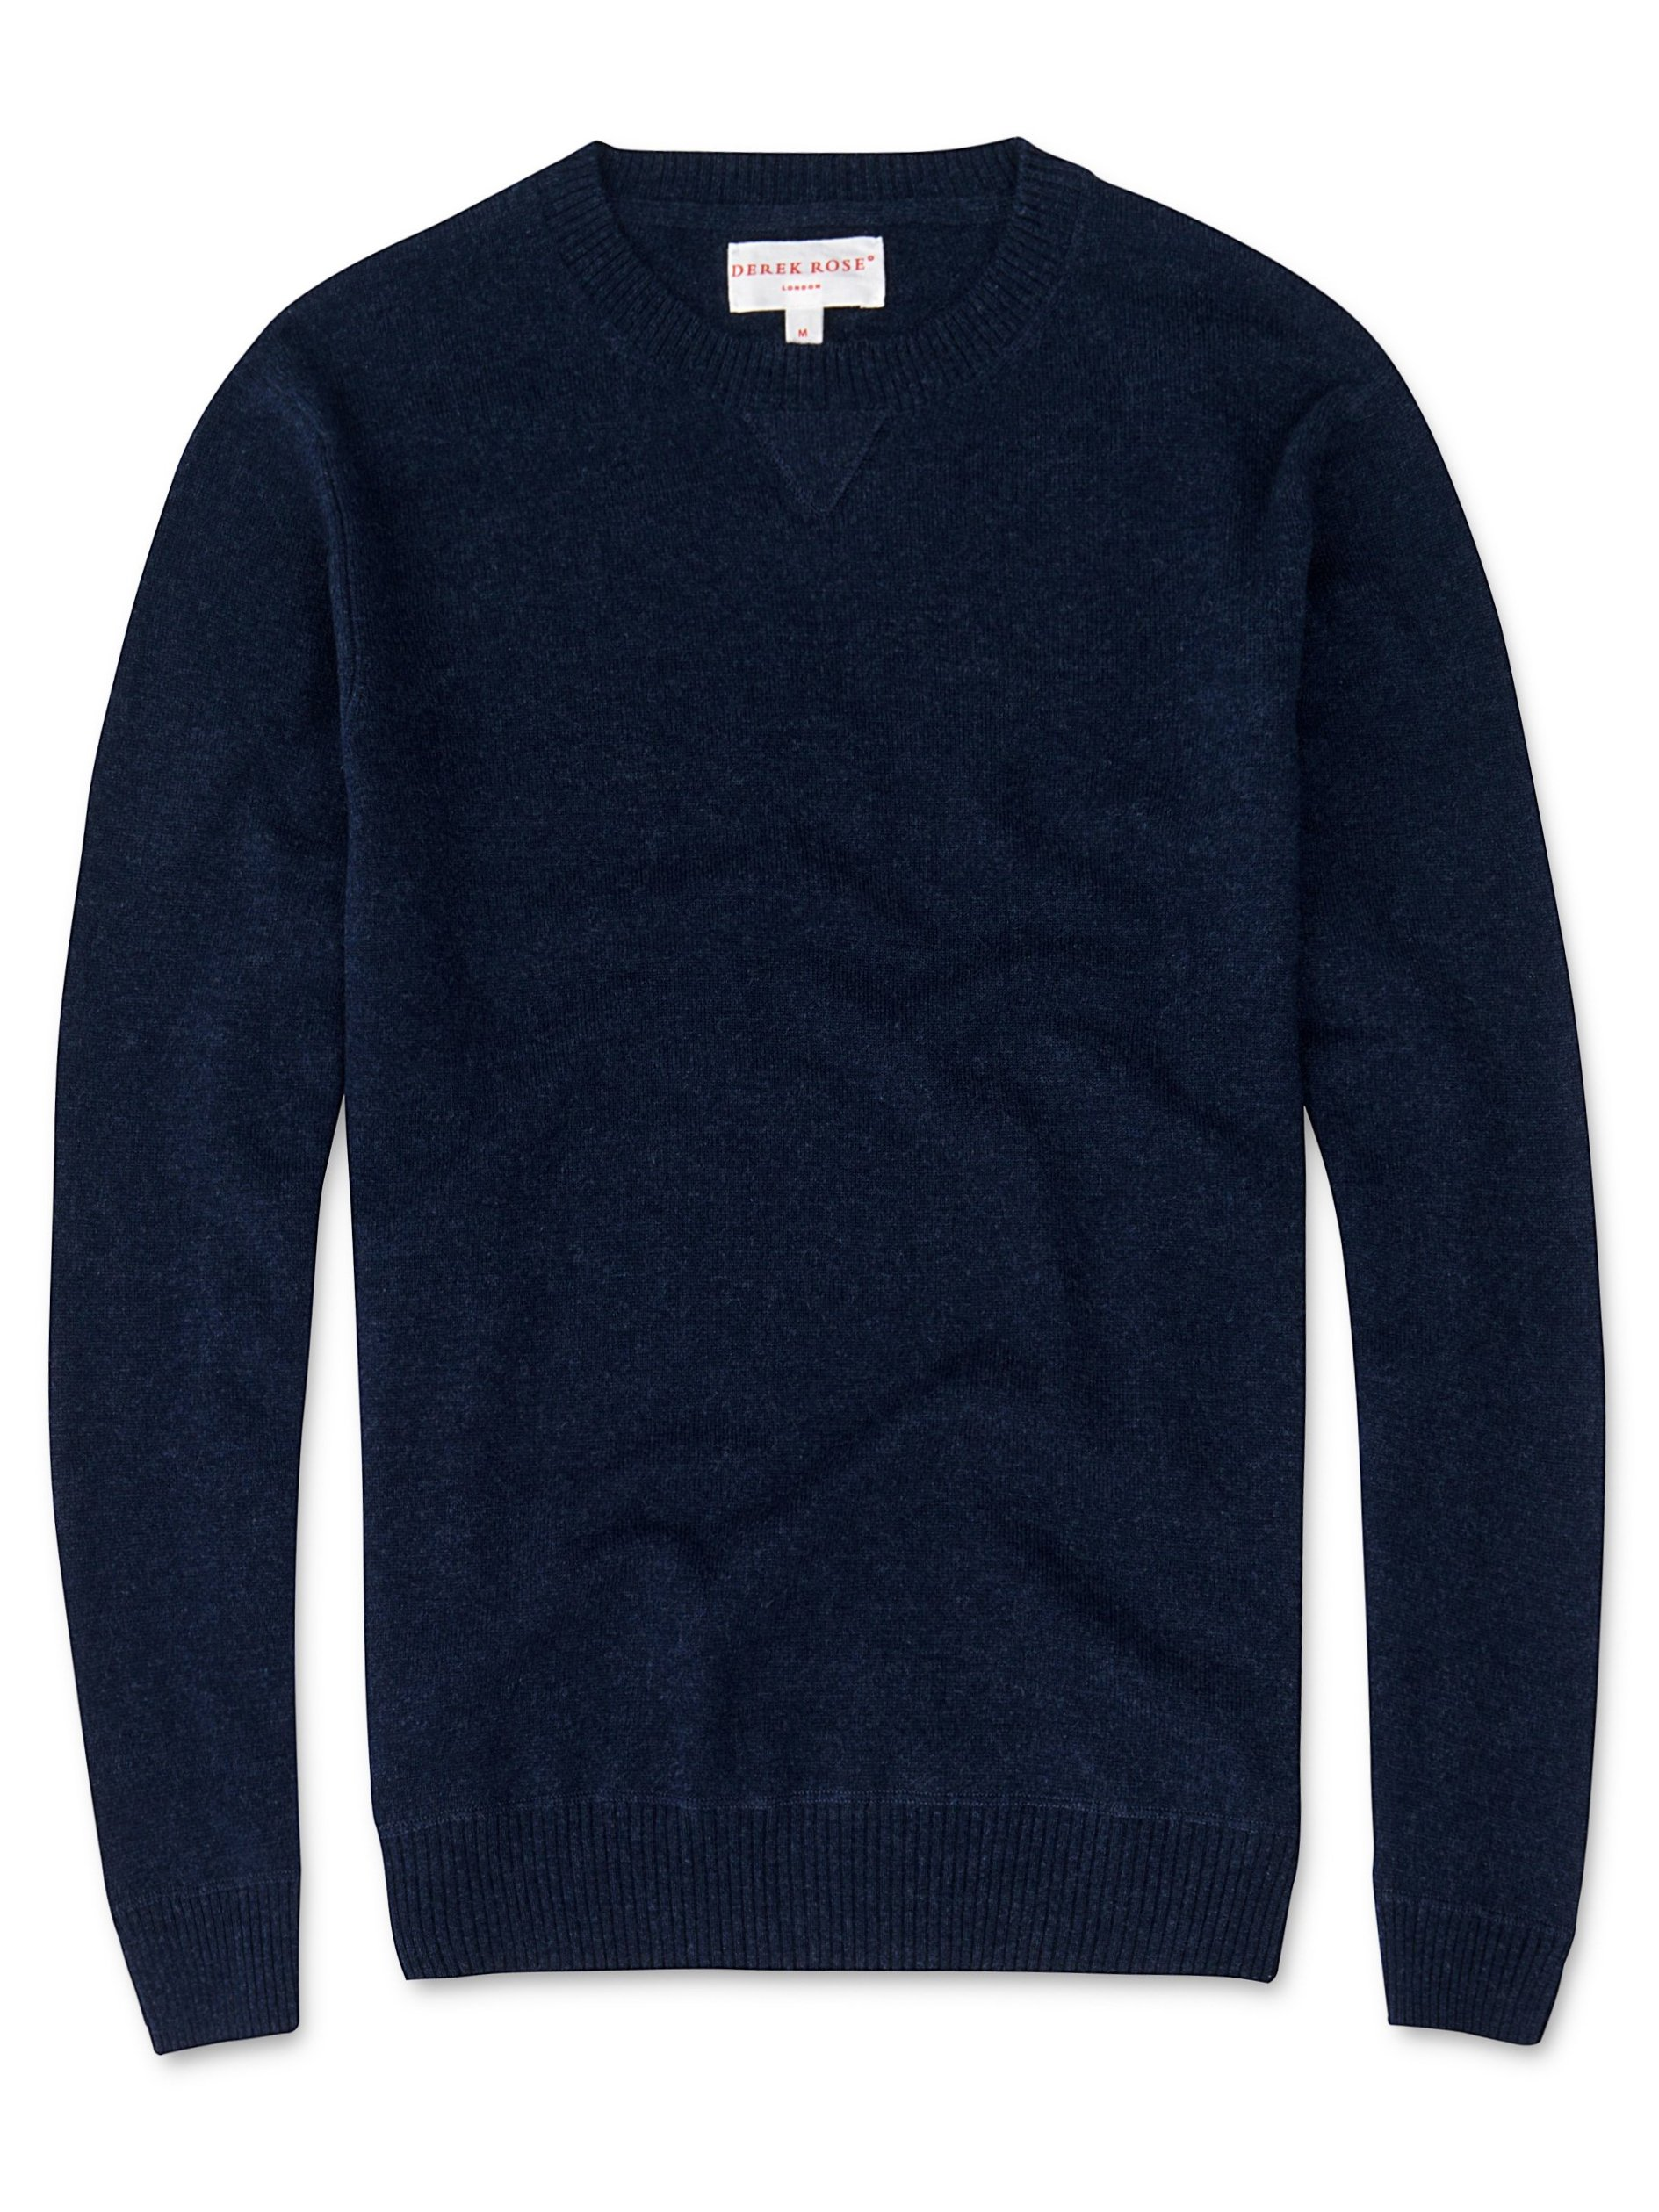 Men's Cashmere Sweater Finley Pure Cashmere Midnight